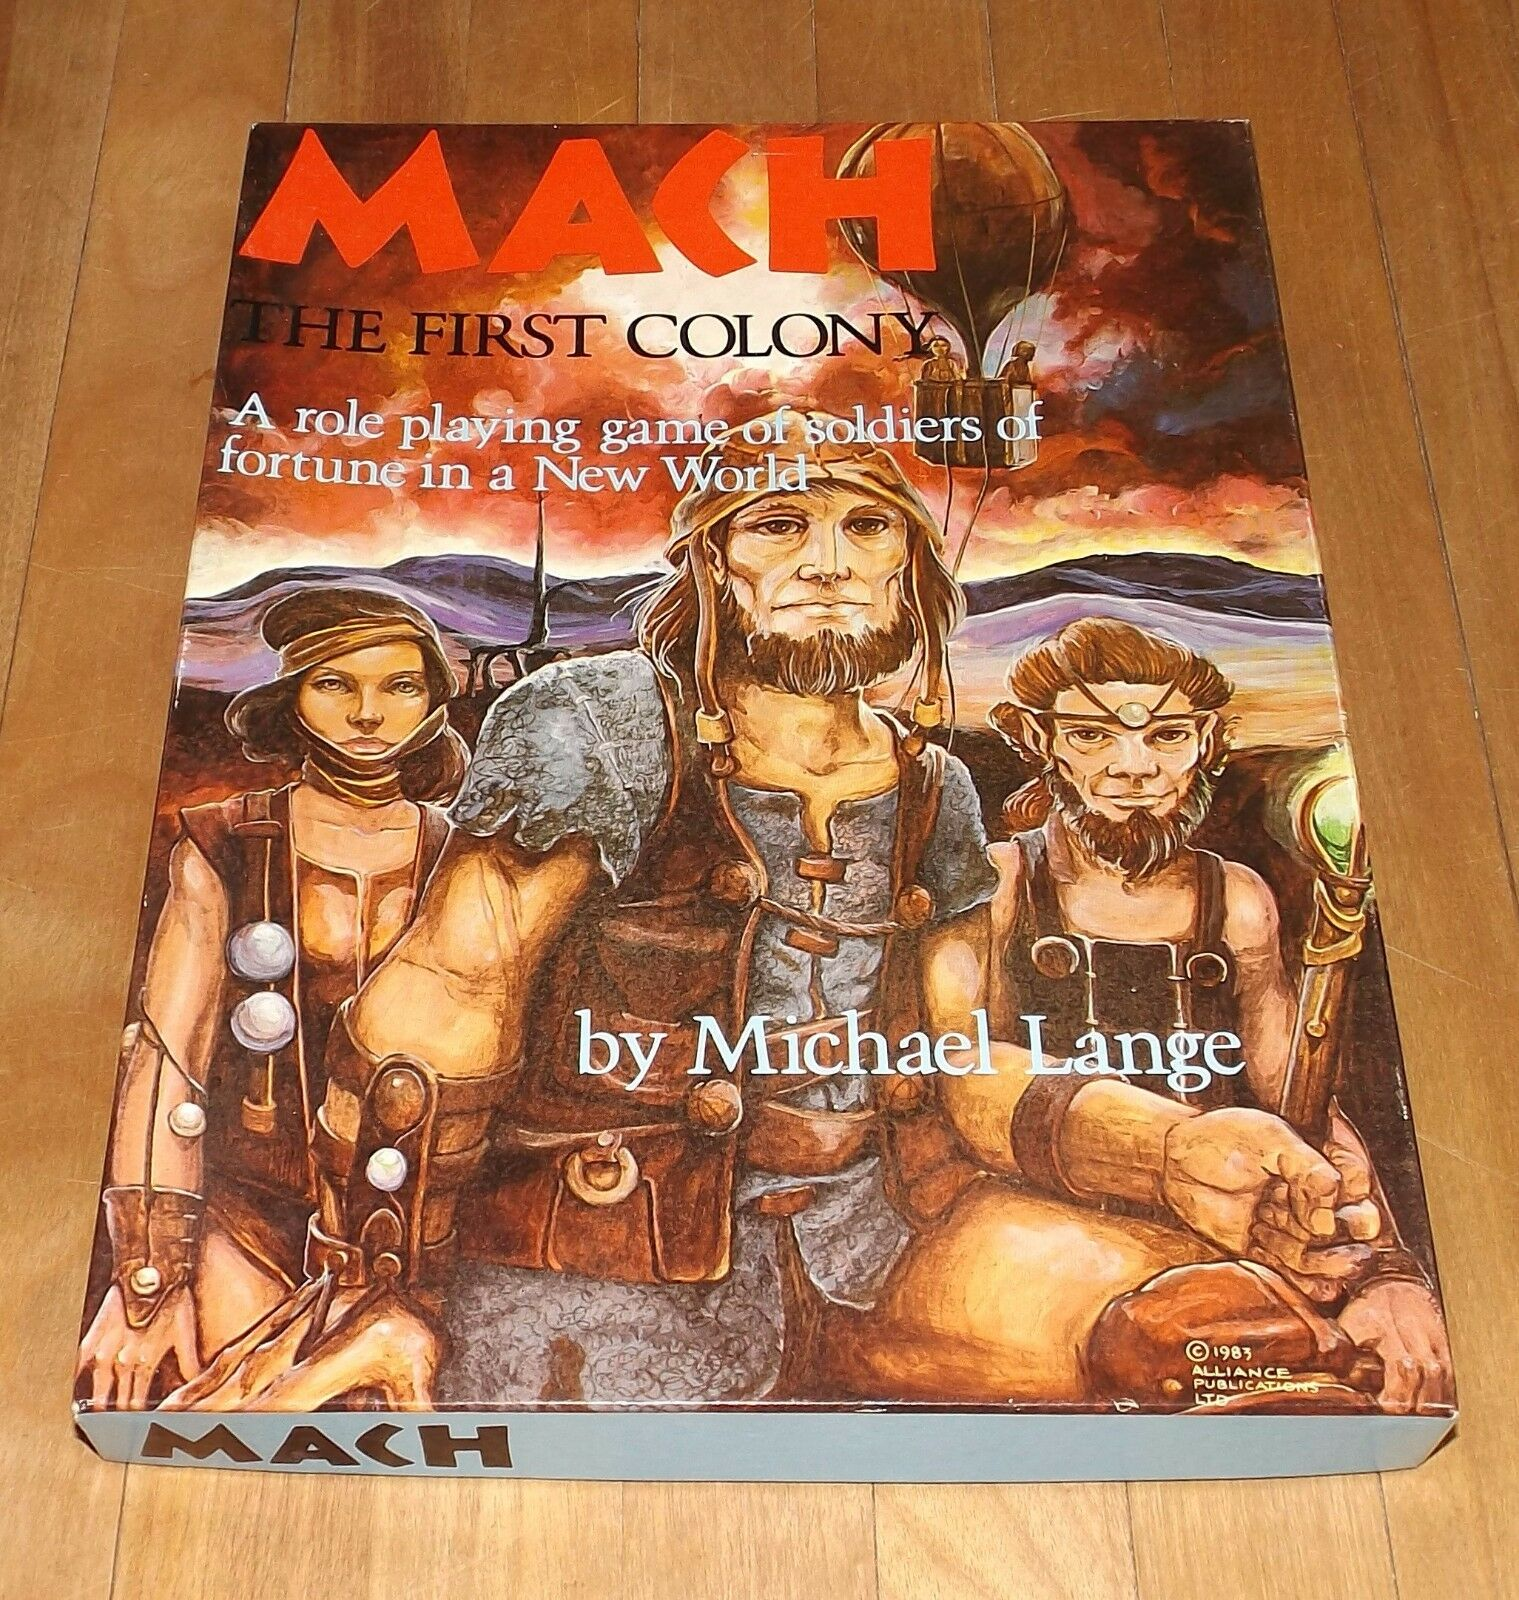 MACH   THE FIRST COLONY game ALLIANCE PUBLICATIONS LTD. complete